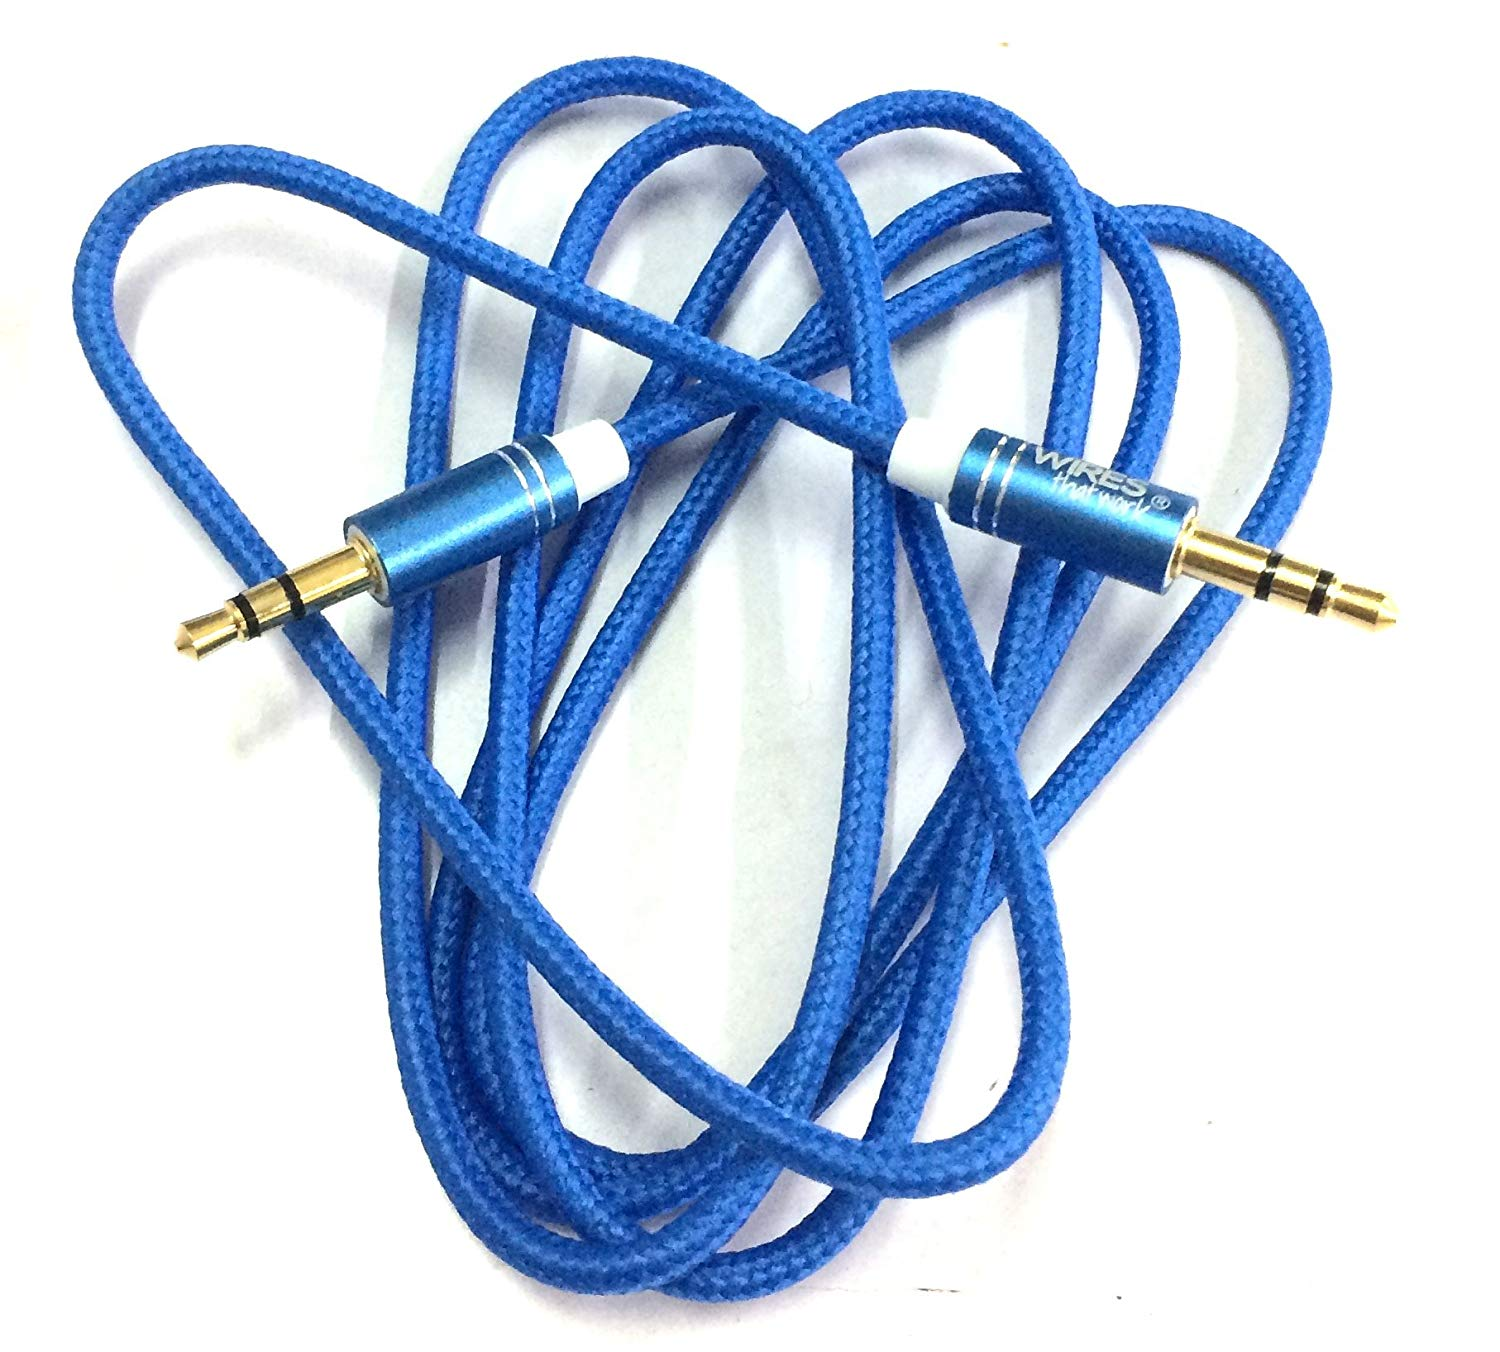 Detec Nylon Braided Aux Cable - Audio Cable - 1 Meter - Blue- Gold Plated Connectors